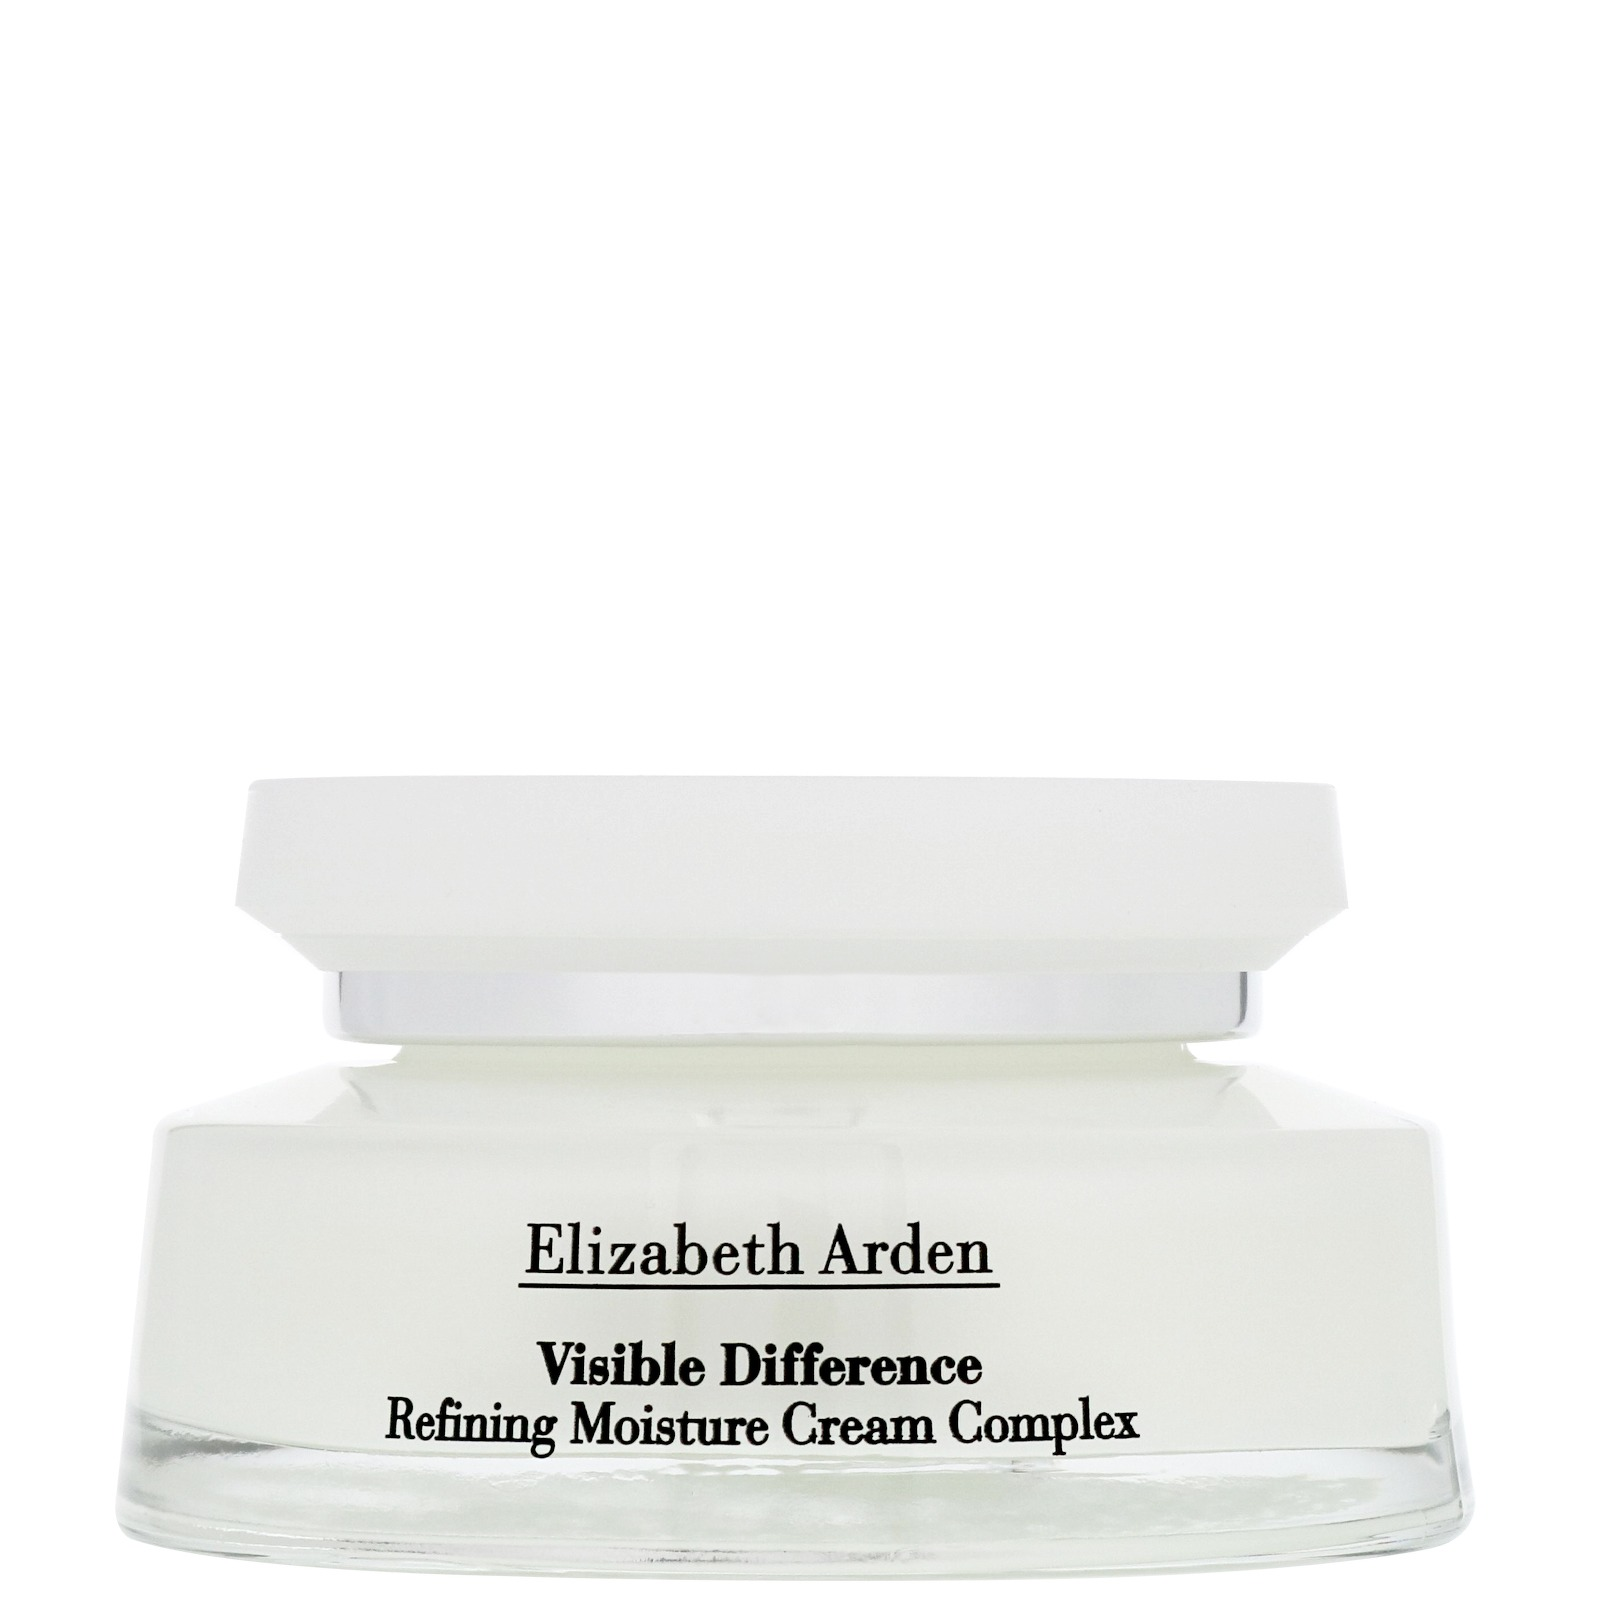 Elizabeth Arden Moisturisers Visible Difference Refining Moisture Cream Complex 100ml / 3.4 fl.oz.